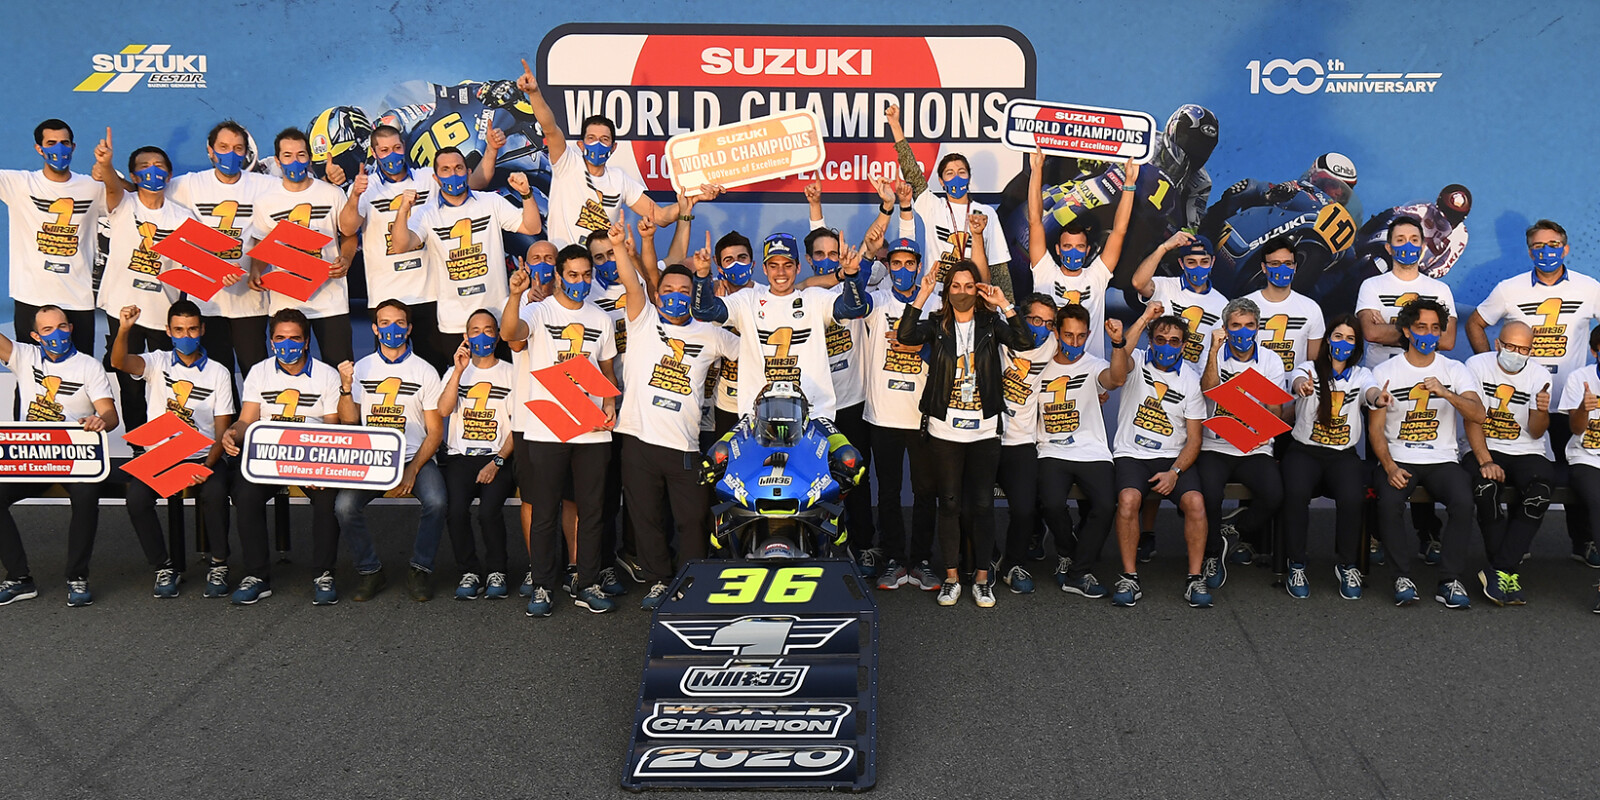 Celebration  images of Joan Mir and Suzuki after winning the 2020 MotoGP Championship